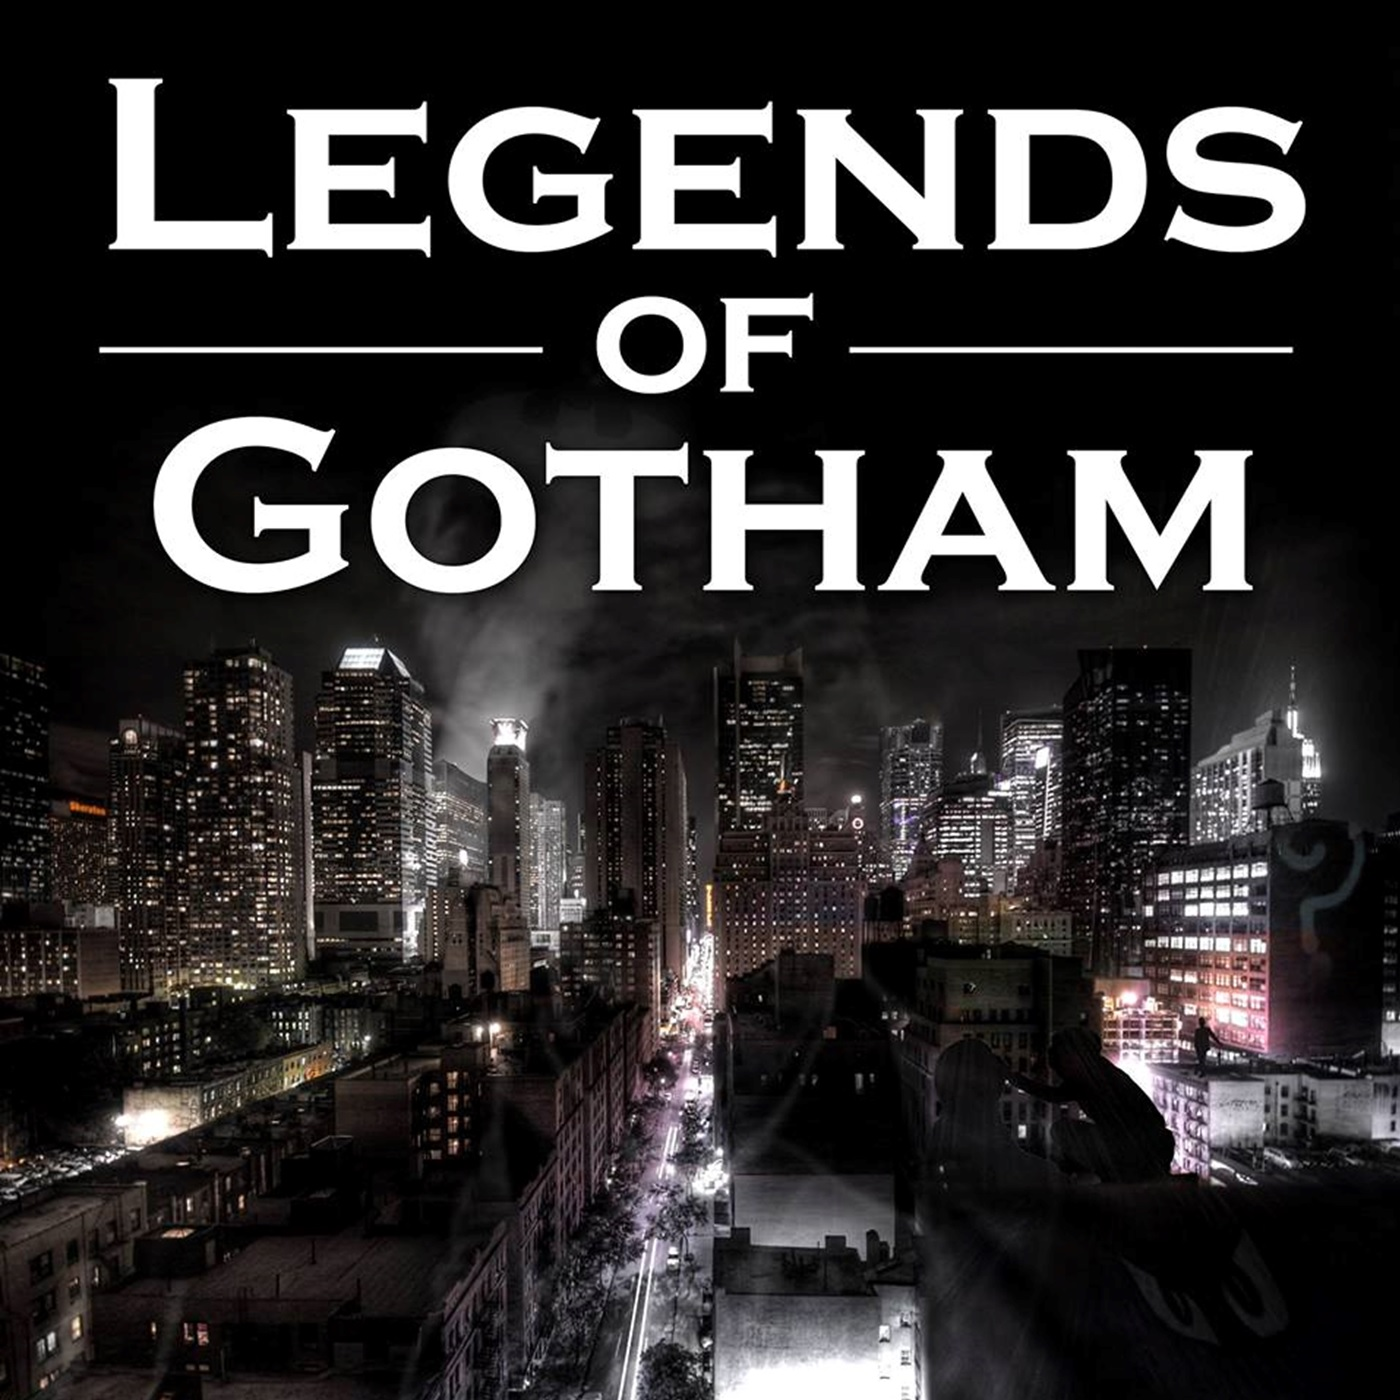 Legends of Gotham